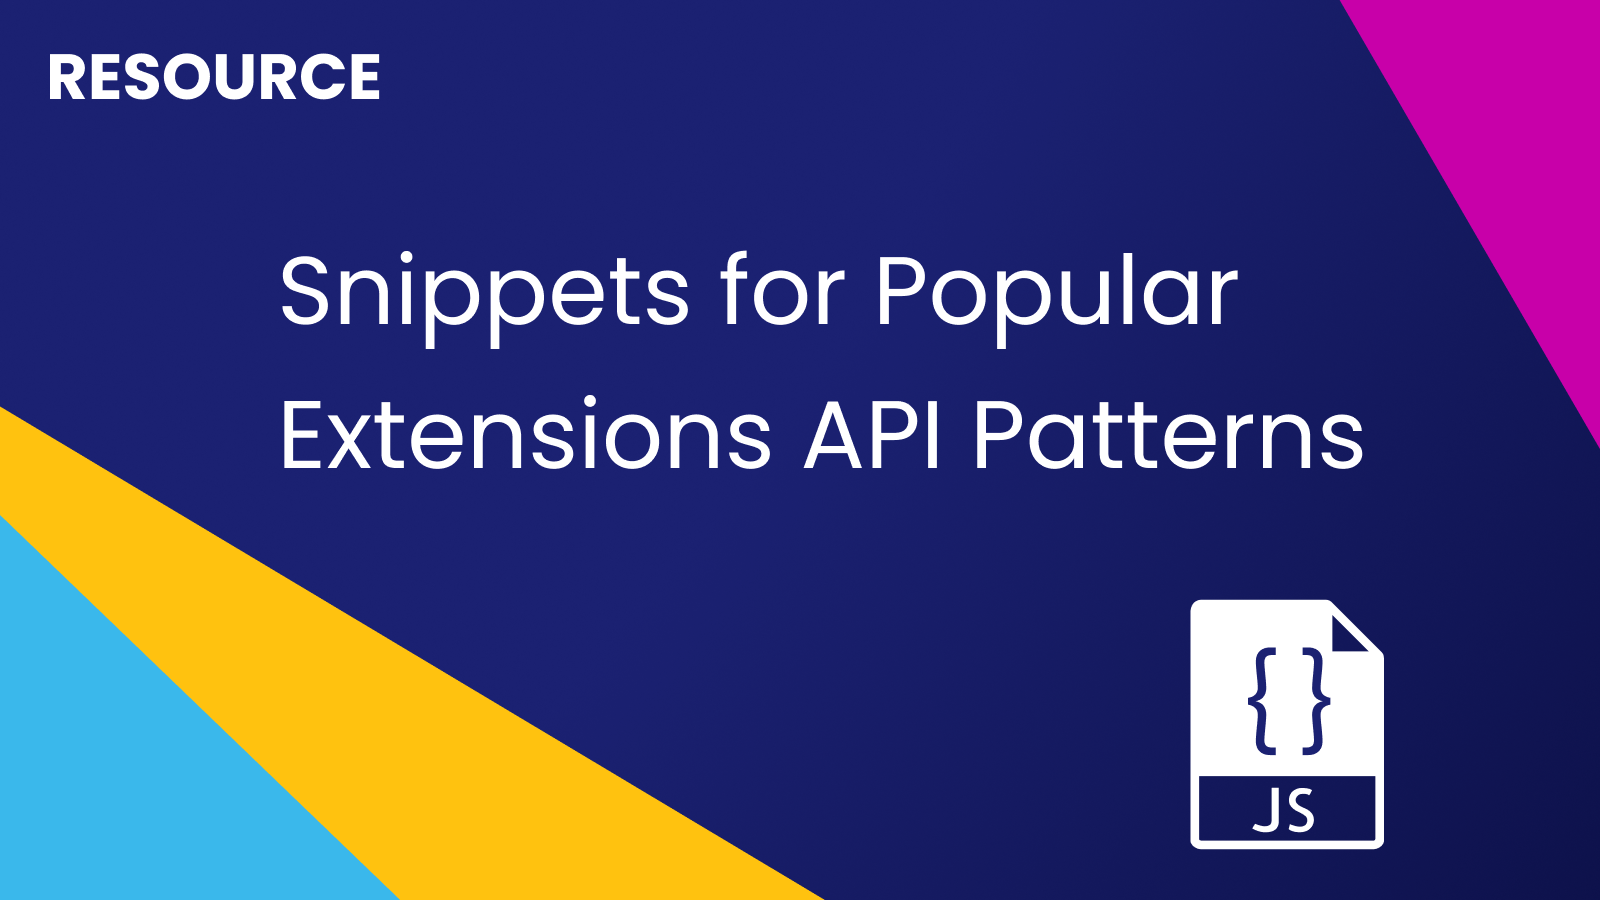 Snippets for Popular Extensions API Patterns